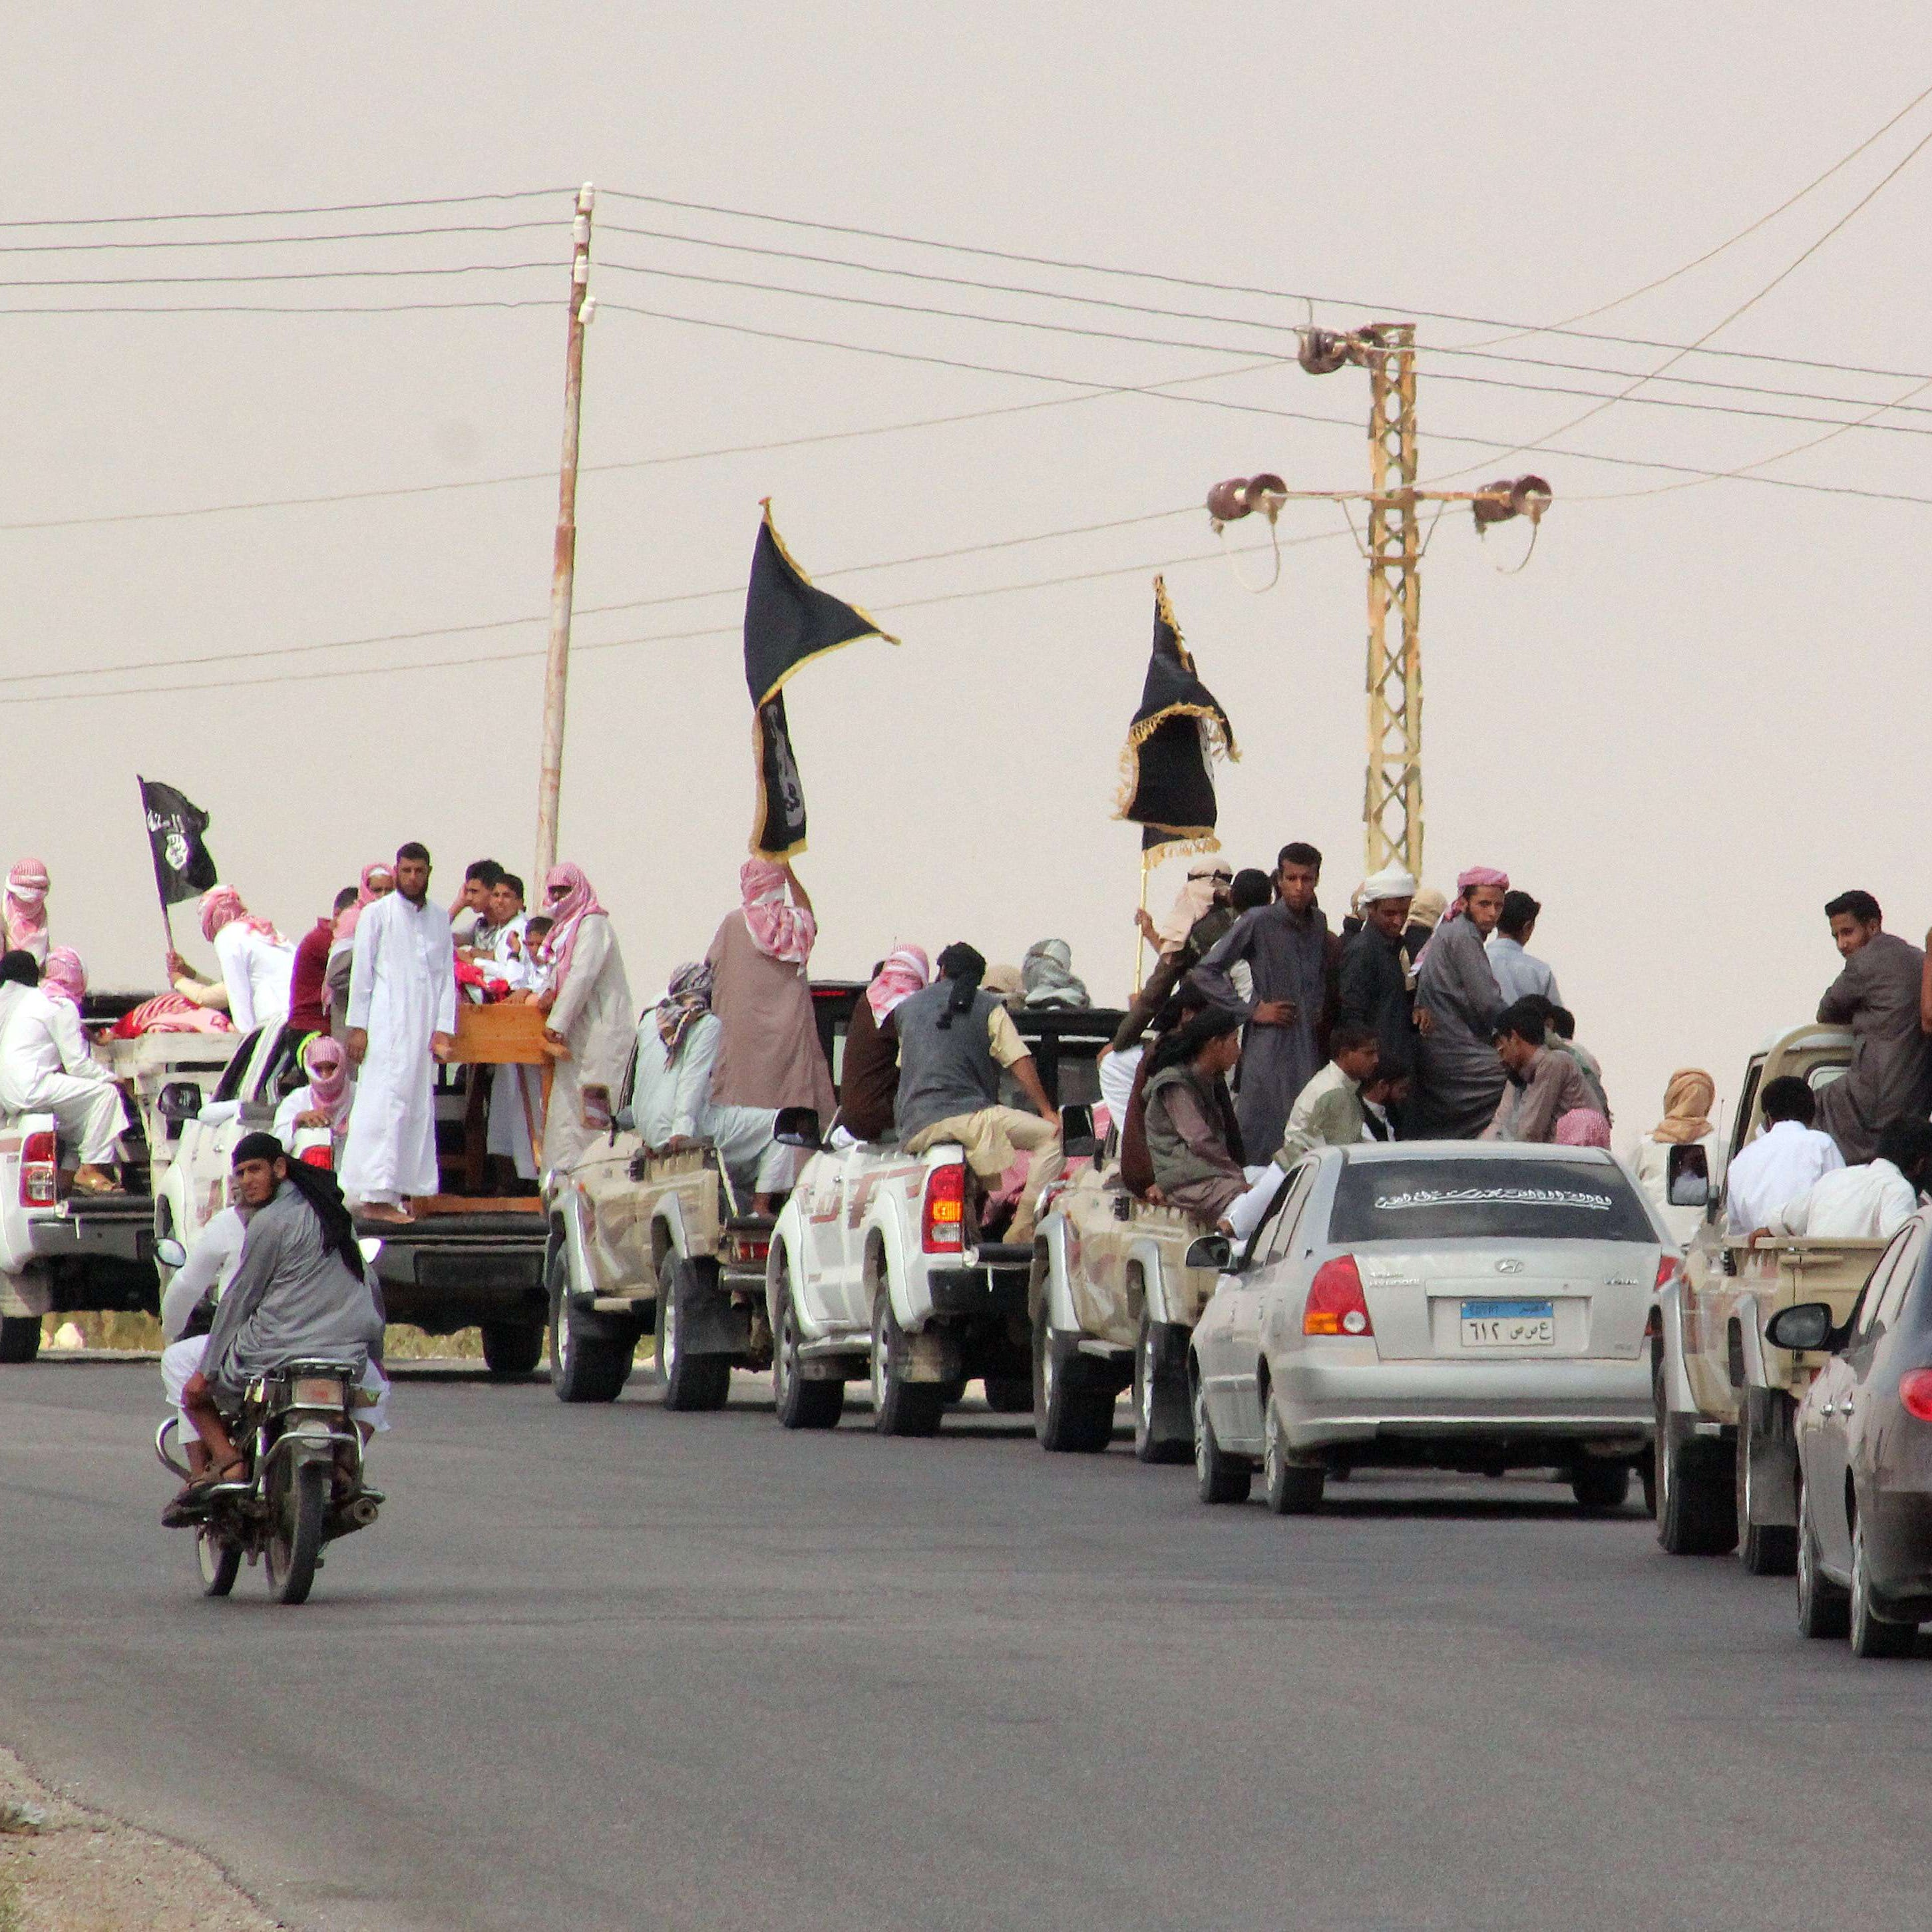 A funeral convoy carrying the bodies of four Egyptian militants drives through the small Sinai village of Sheikh Zuweid and several border towns in the north of the Sinai peninsula on Aug. 10. The Egyptian militant group Ansar Beit al-Maqdis said four of its members belonging to Sinai tribes had been killed by Israeli drones on Aug. 9.